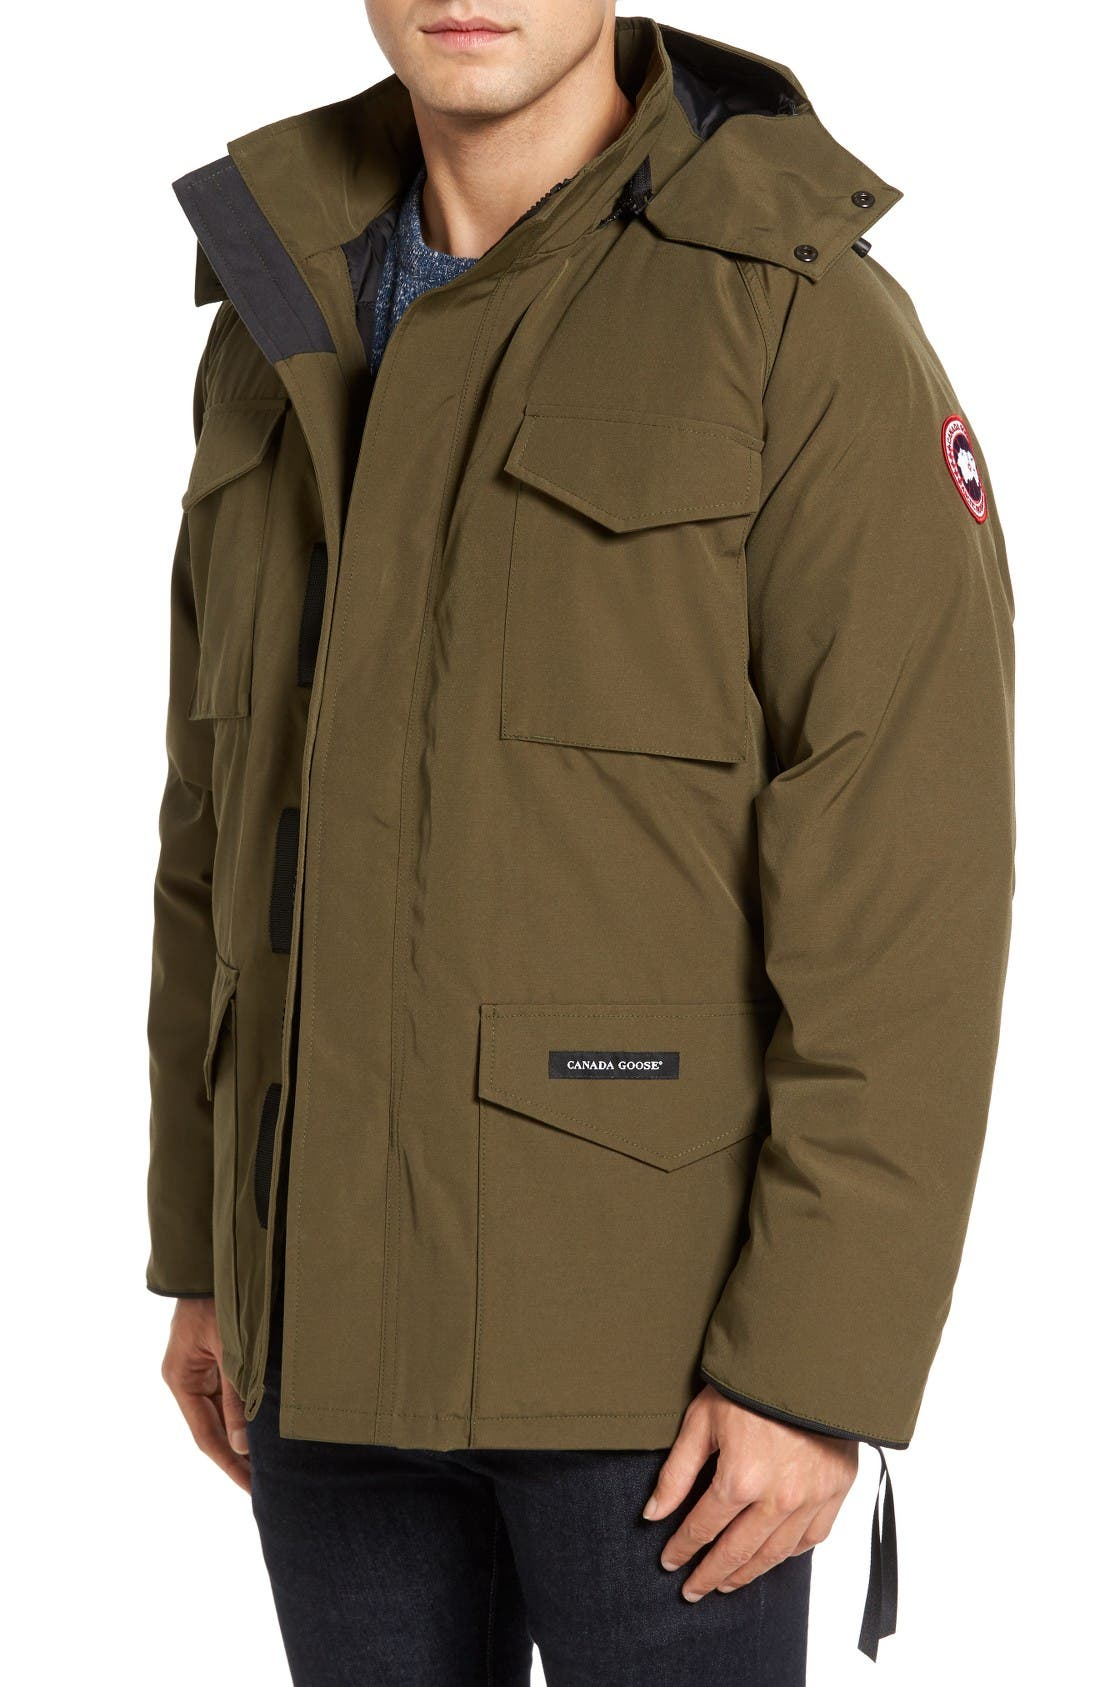 Canada Goose 'Constable' Regular Fit Water Resistant Down Parka